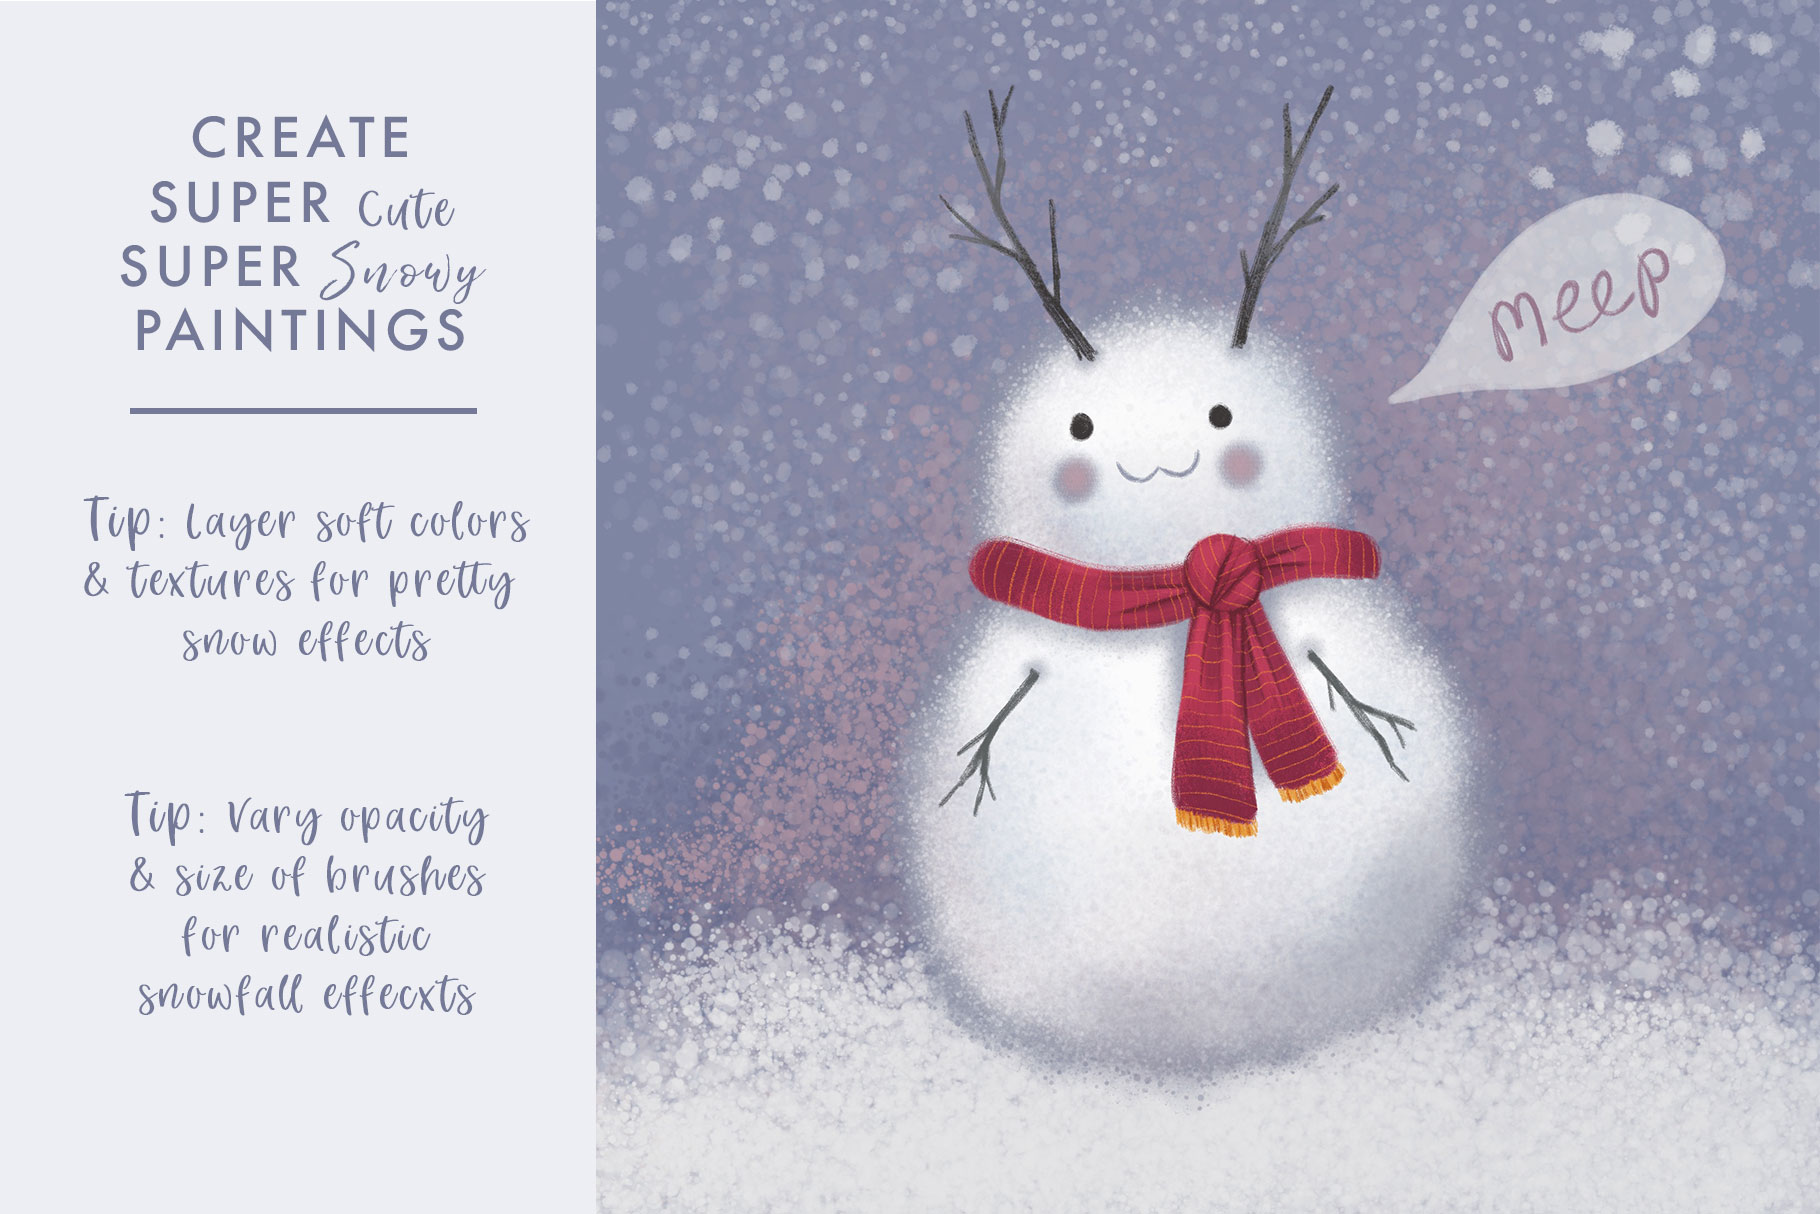 Magical Snow Procreate Brushes example image 5